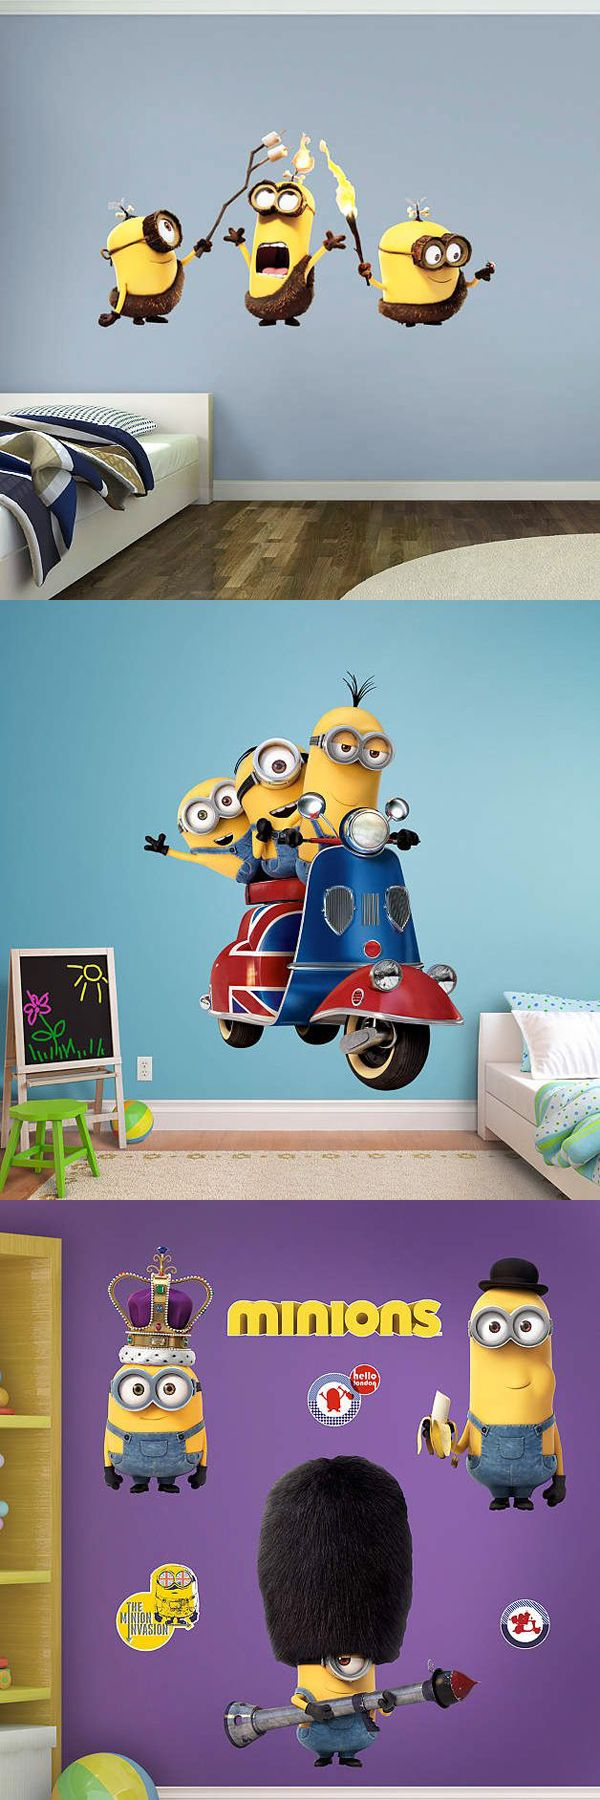 minion room decor 20 most wonderful minion decor ideas homemydesign 12408